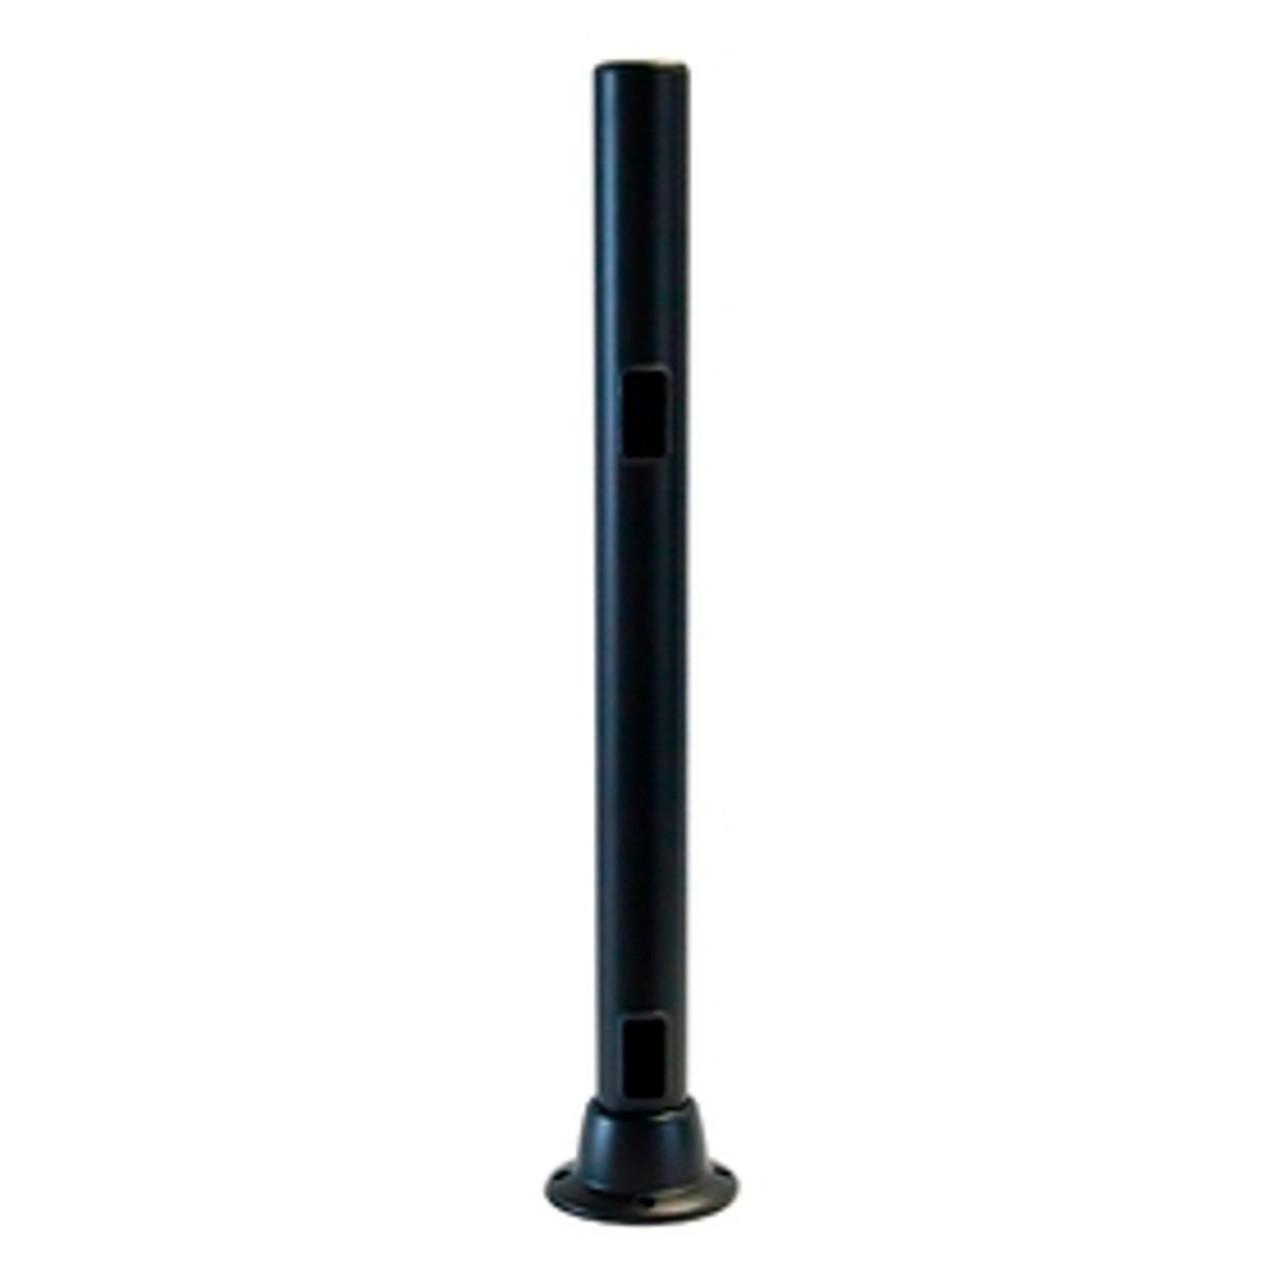 POS Grommet Mount Base 30 inch Pole